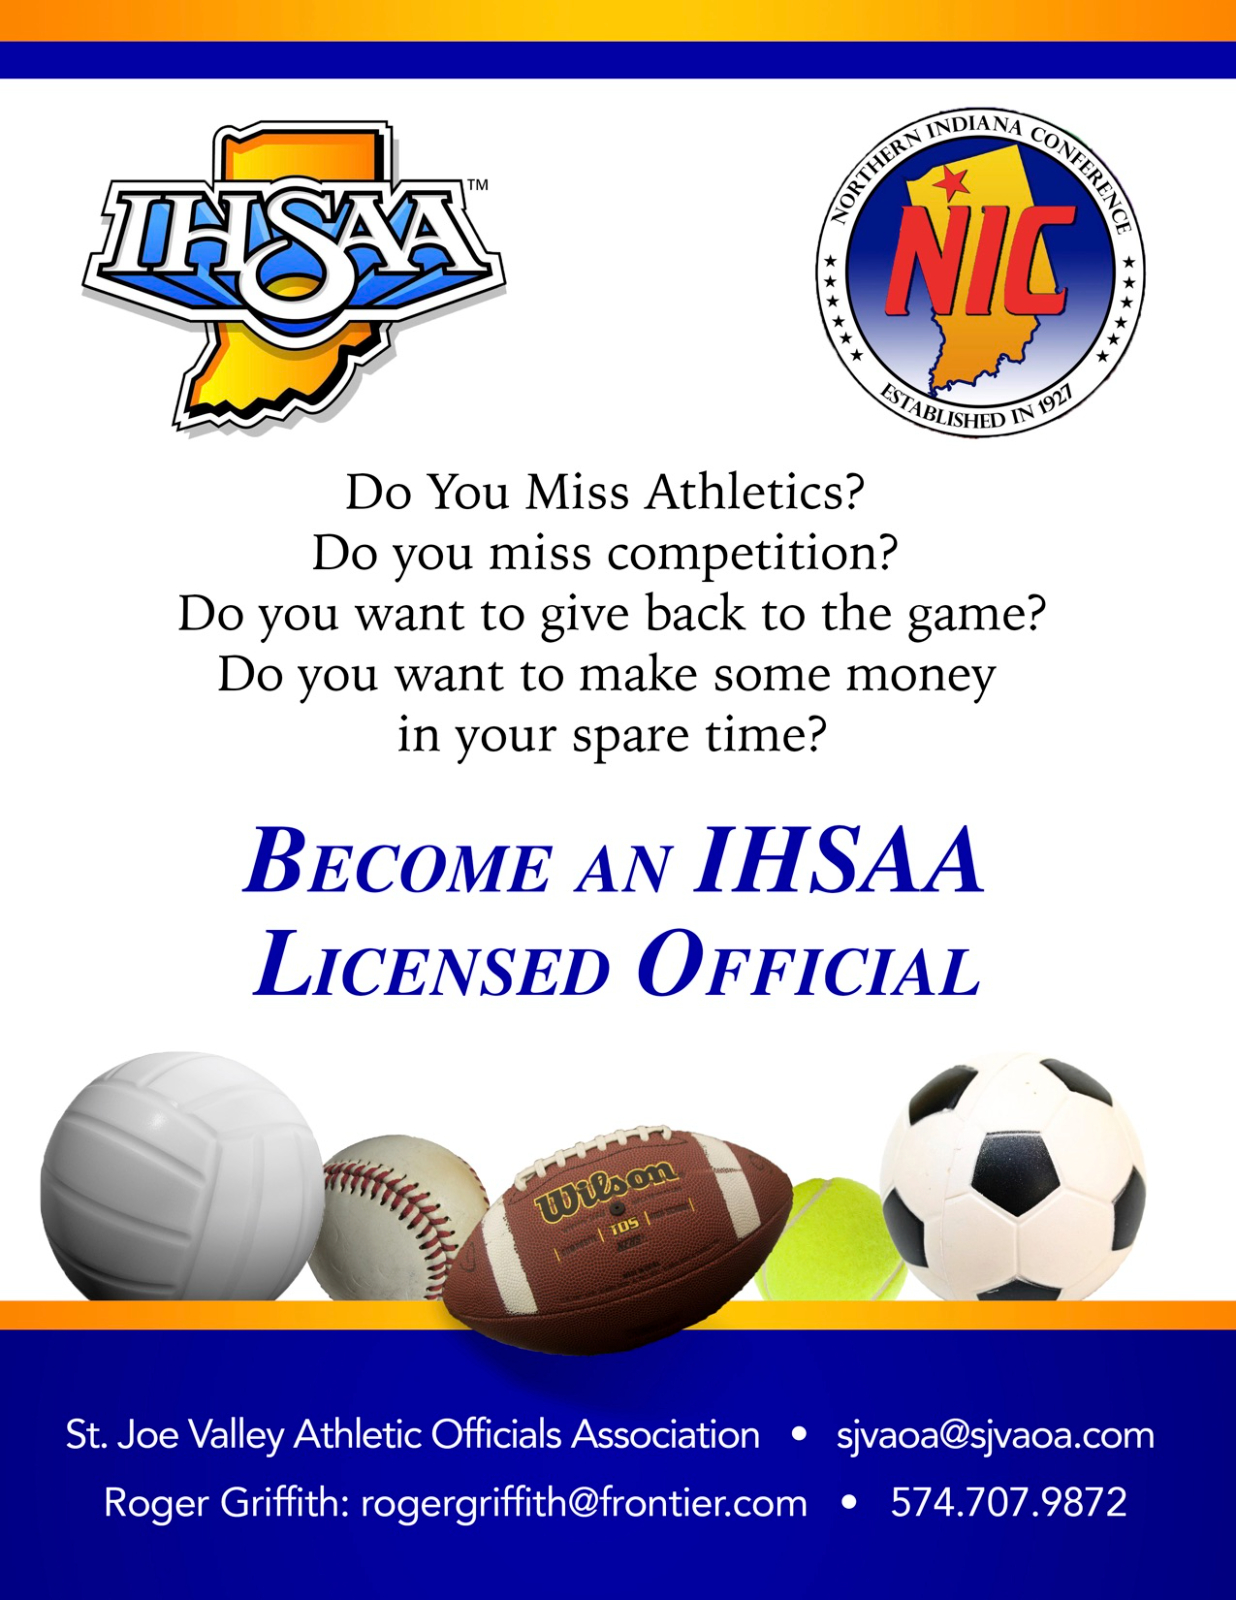 Want to become an IHSAA Official?